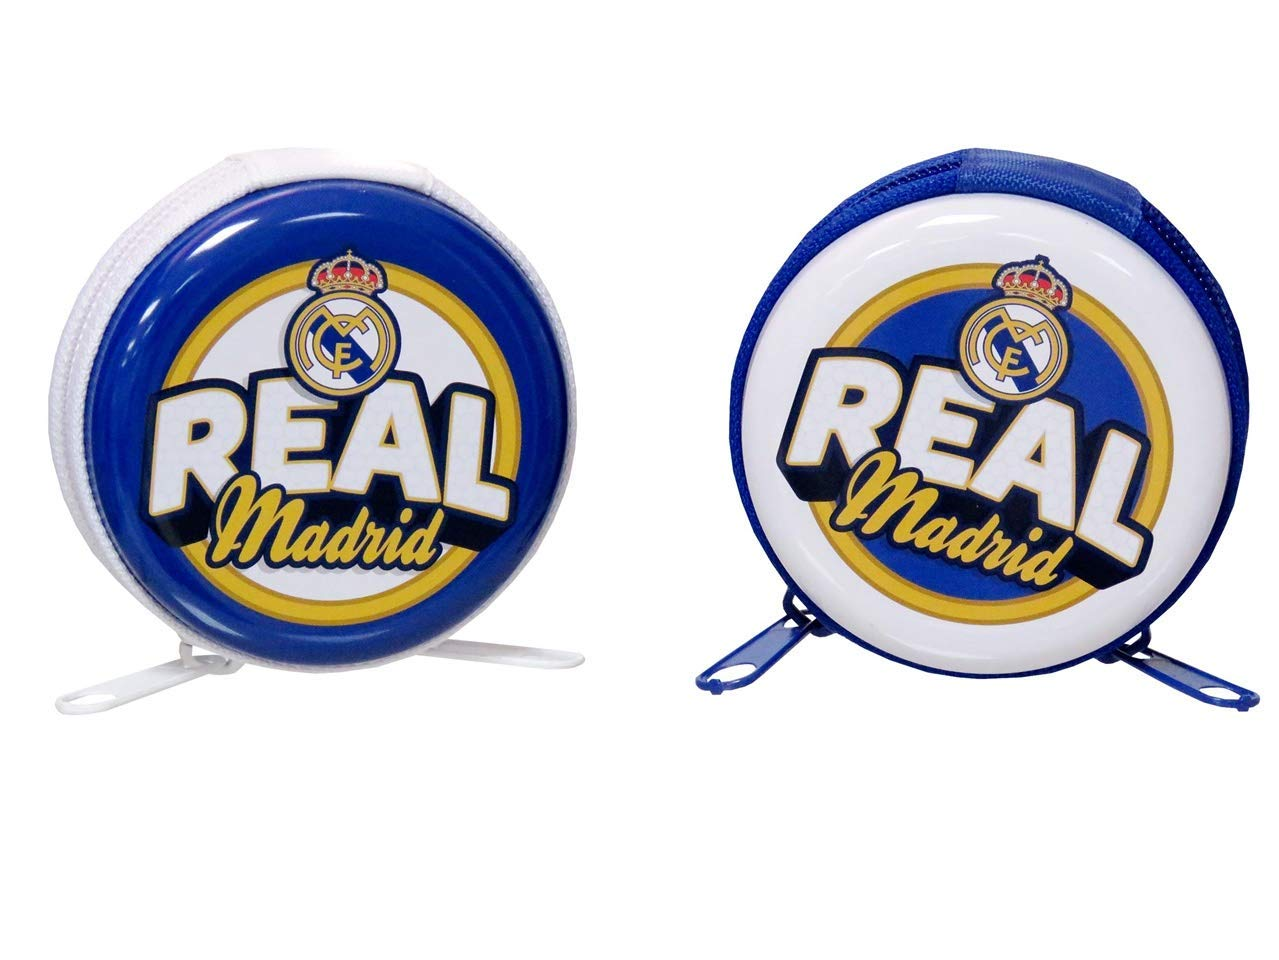 C Y P Monedero DE Metal Redondo Real Madrid MM-30-RM: Amazon ...